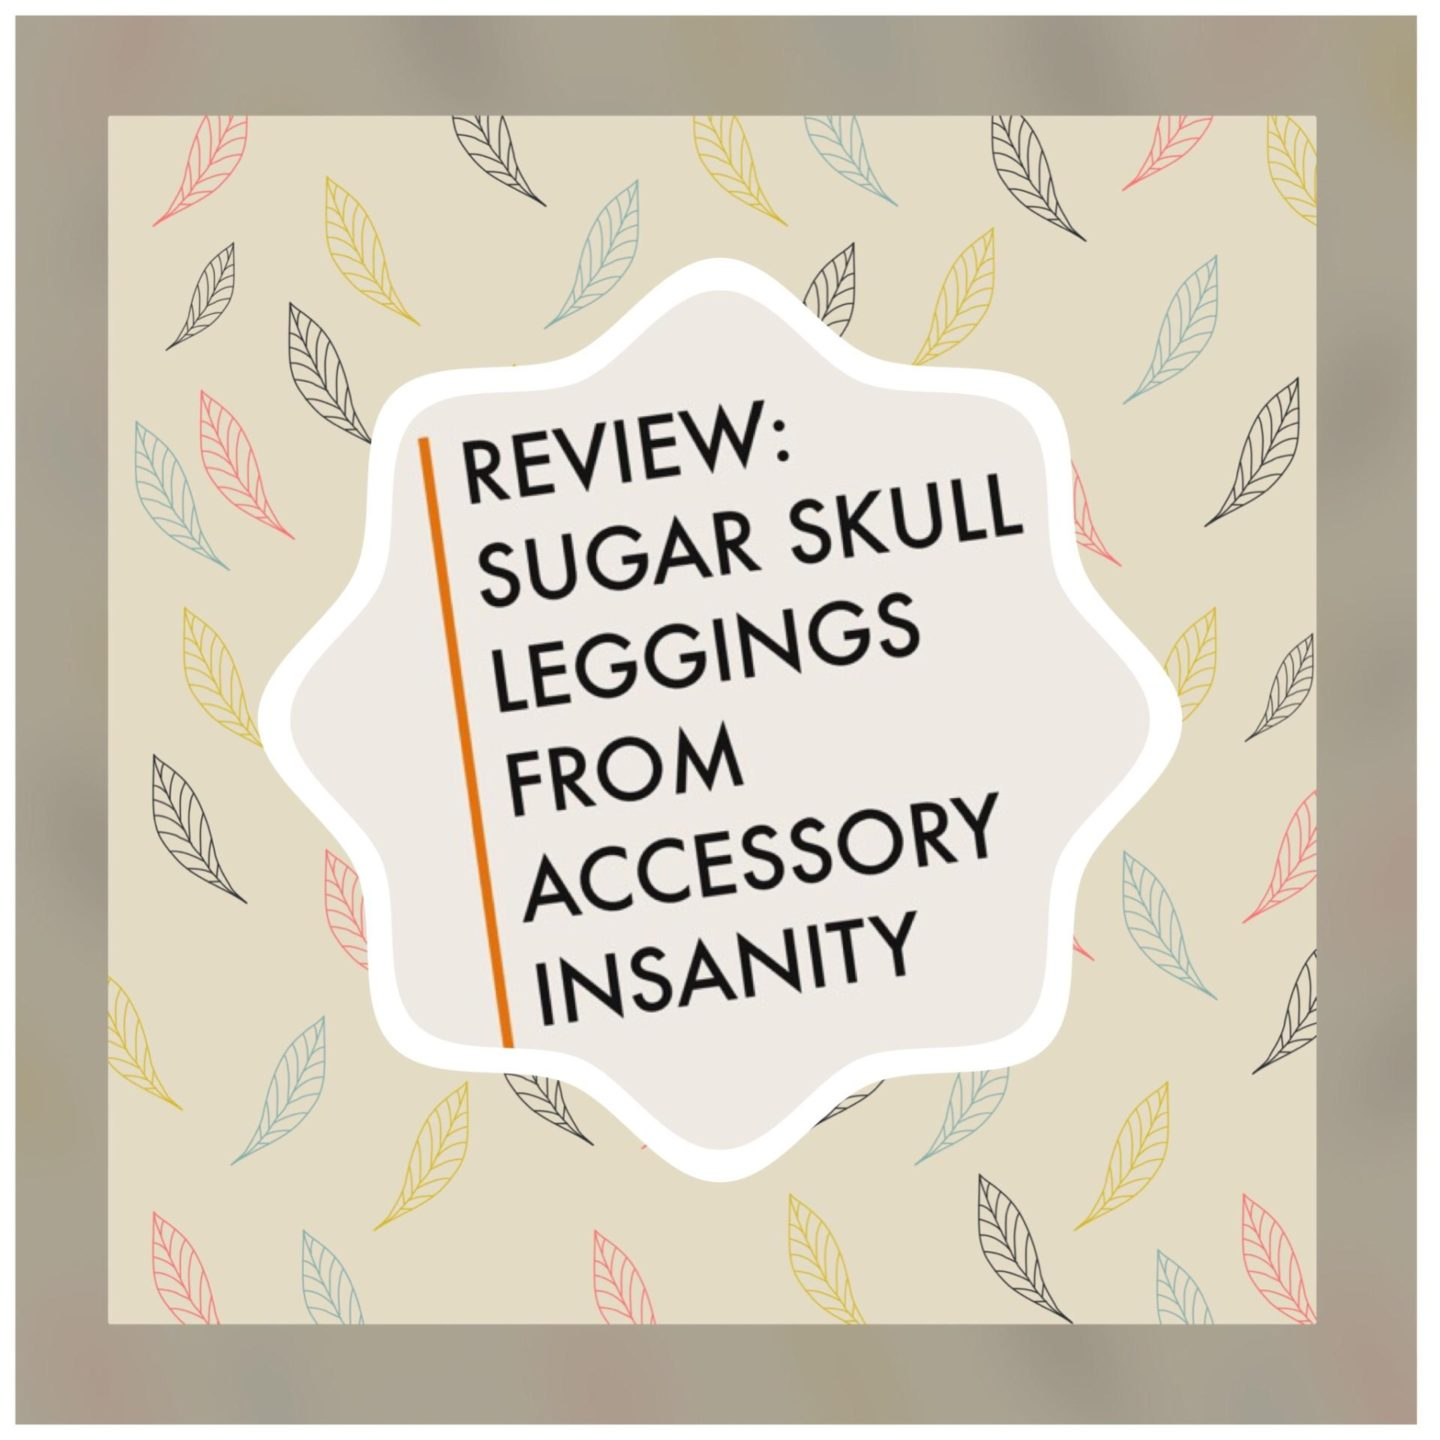 Image - sugar skull legging review